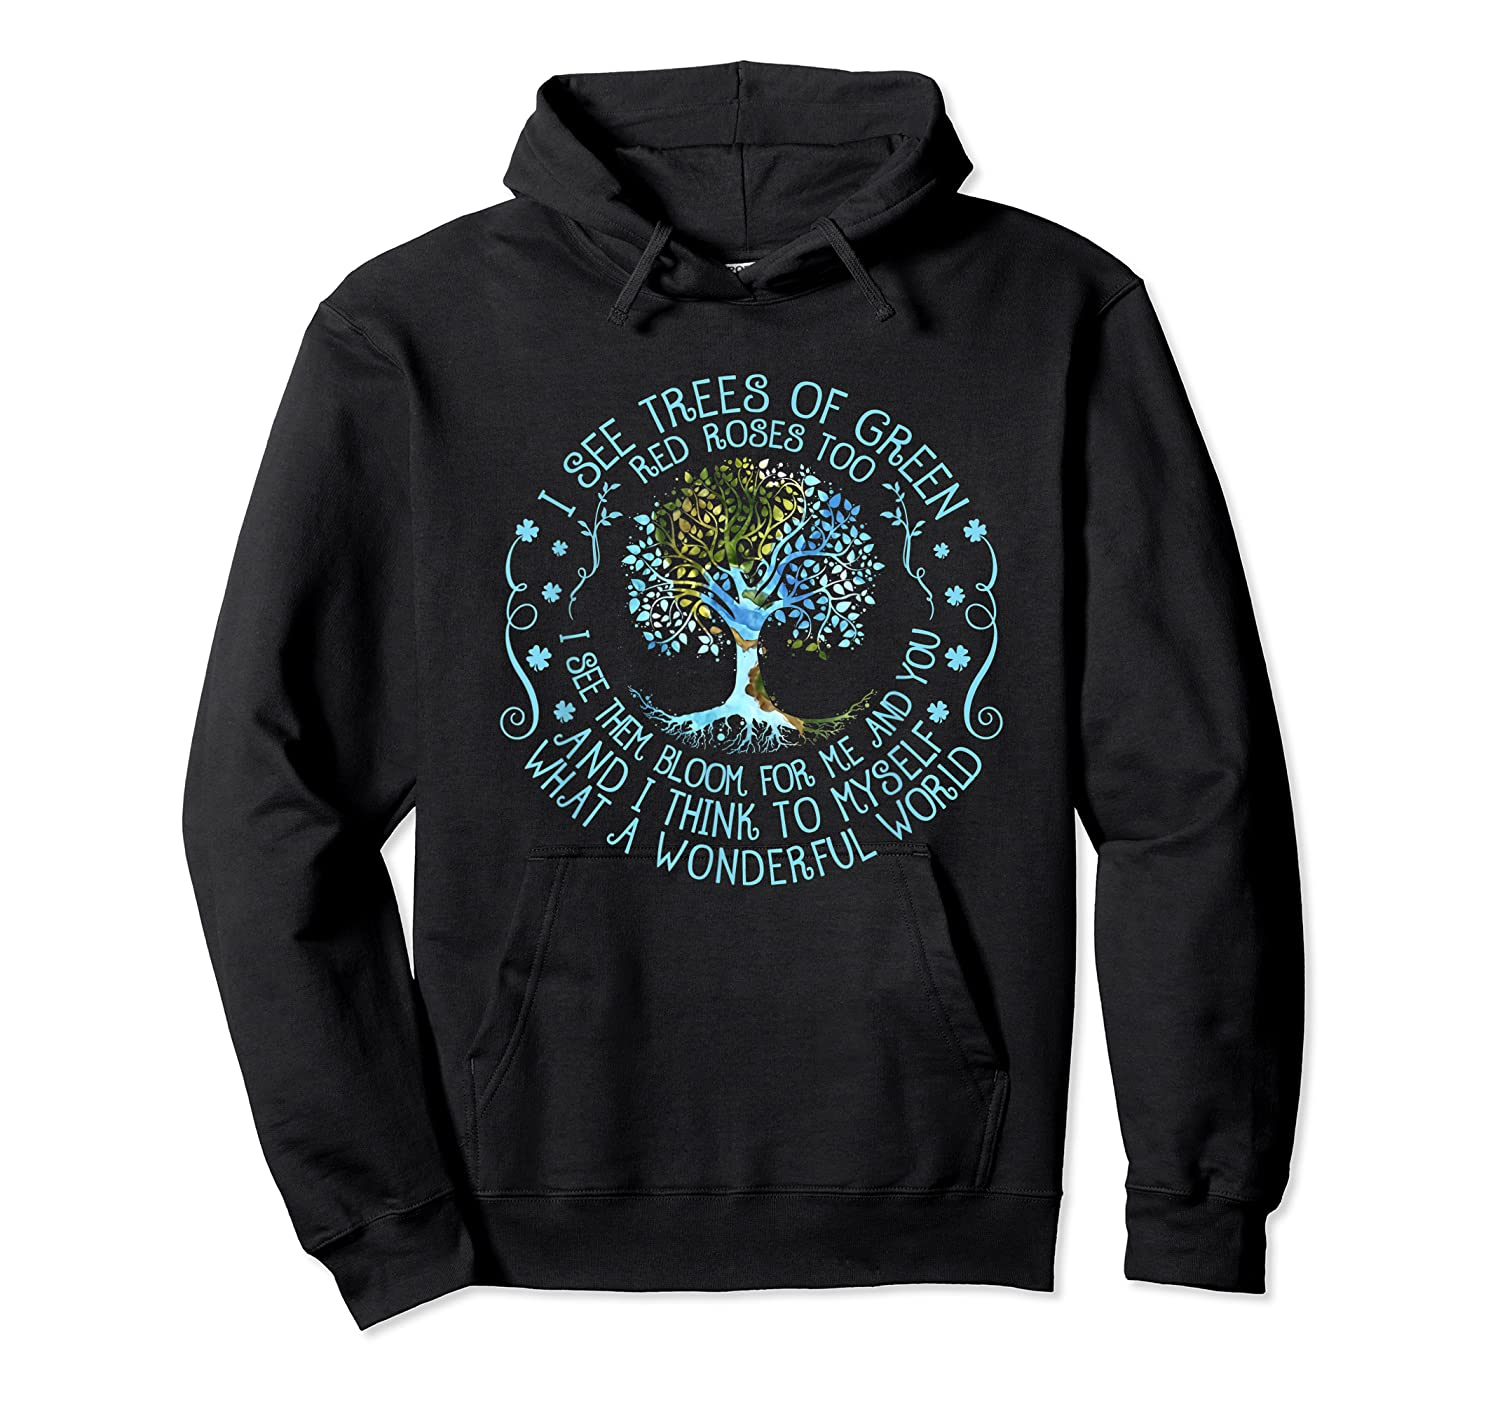 And I Think To Myself What A Wonderful World Shirts Unisex Pullover Hoodie